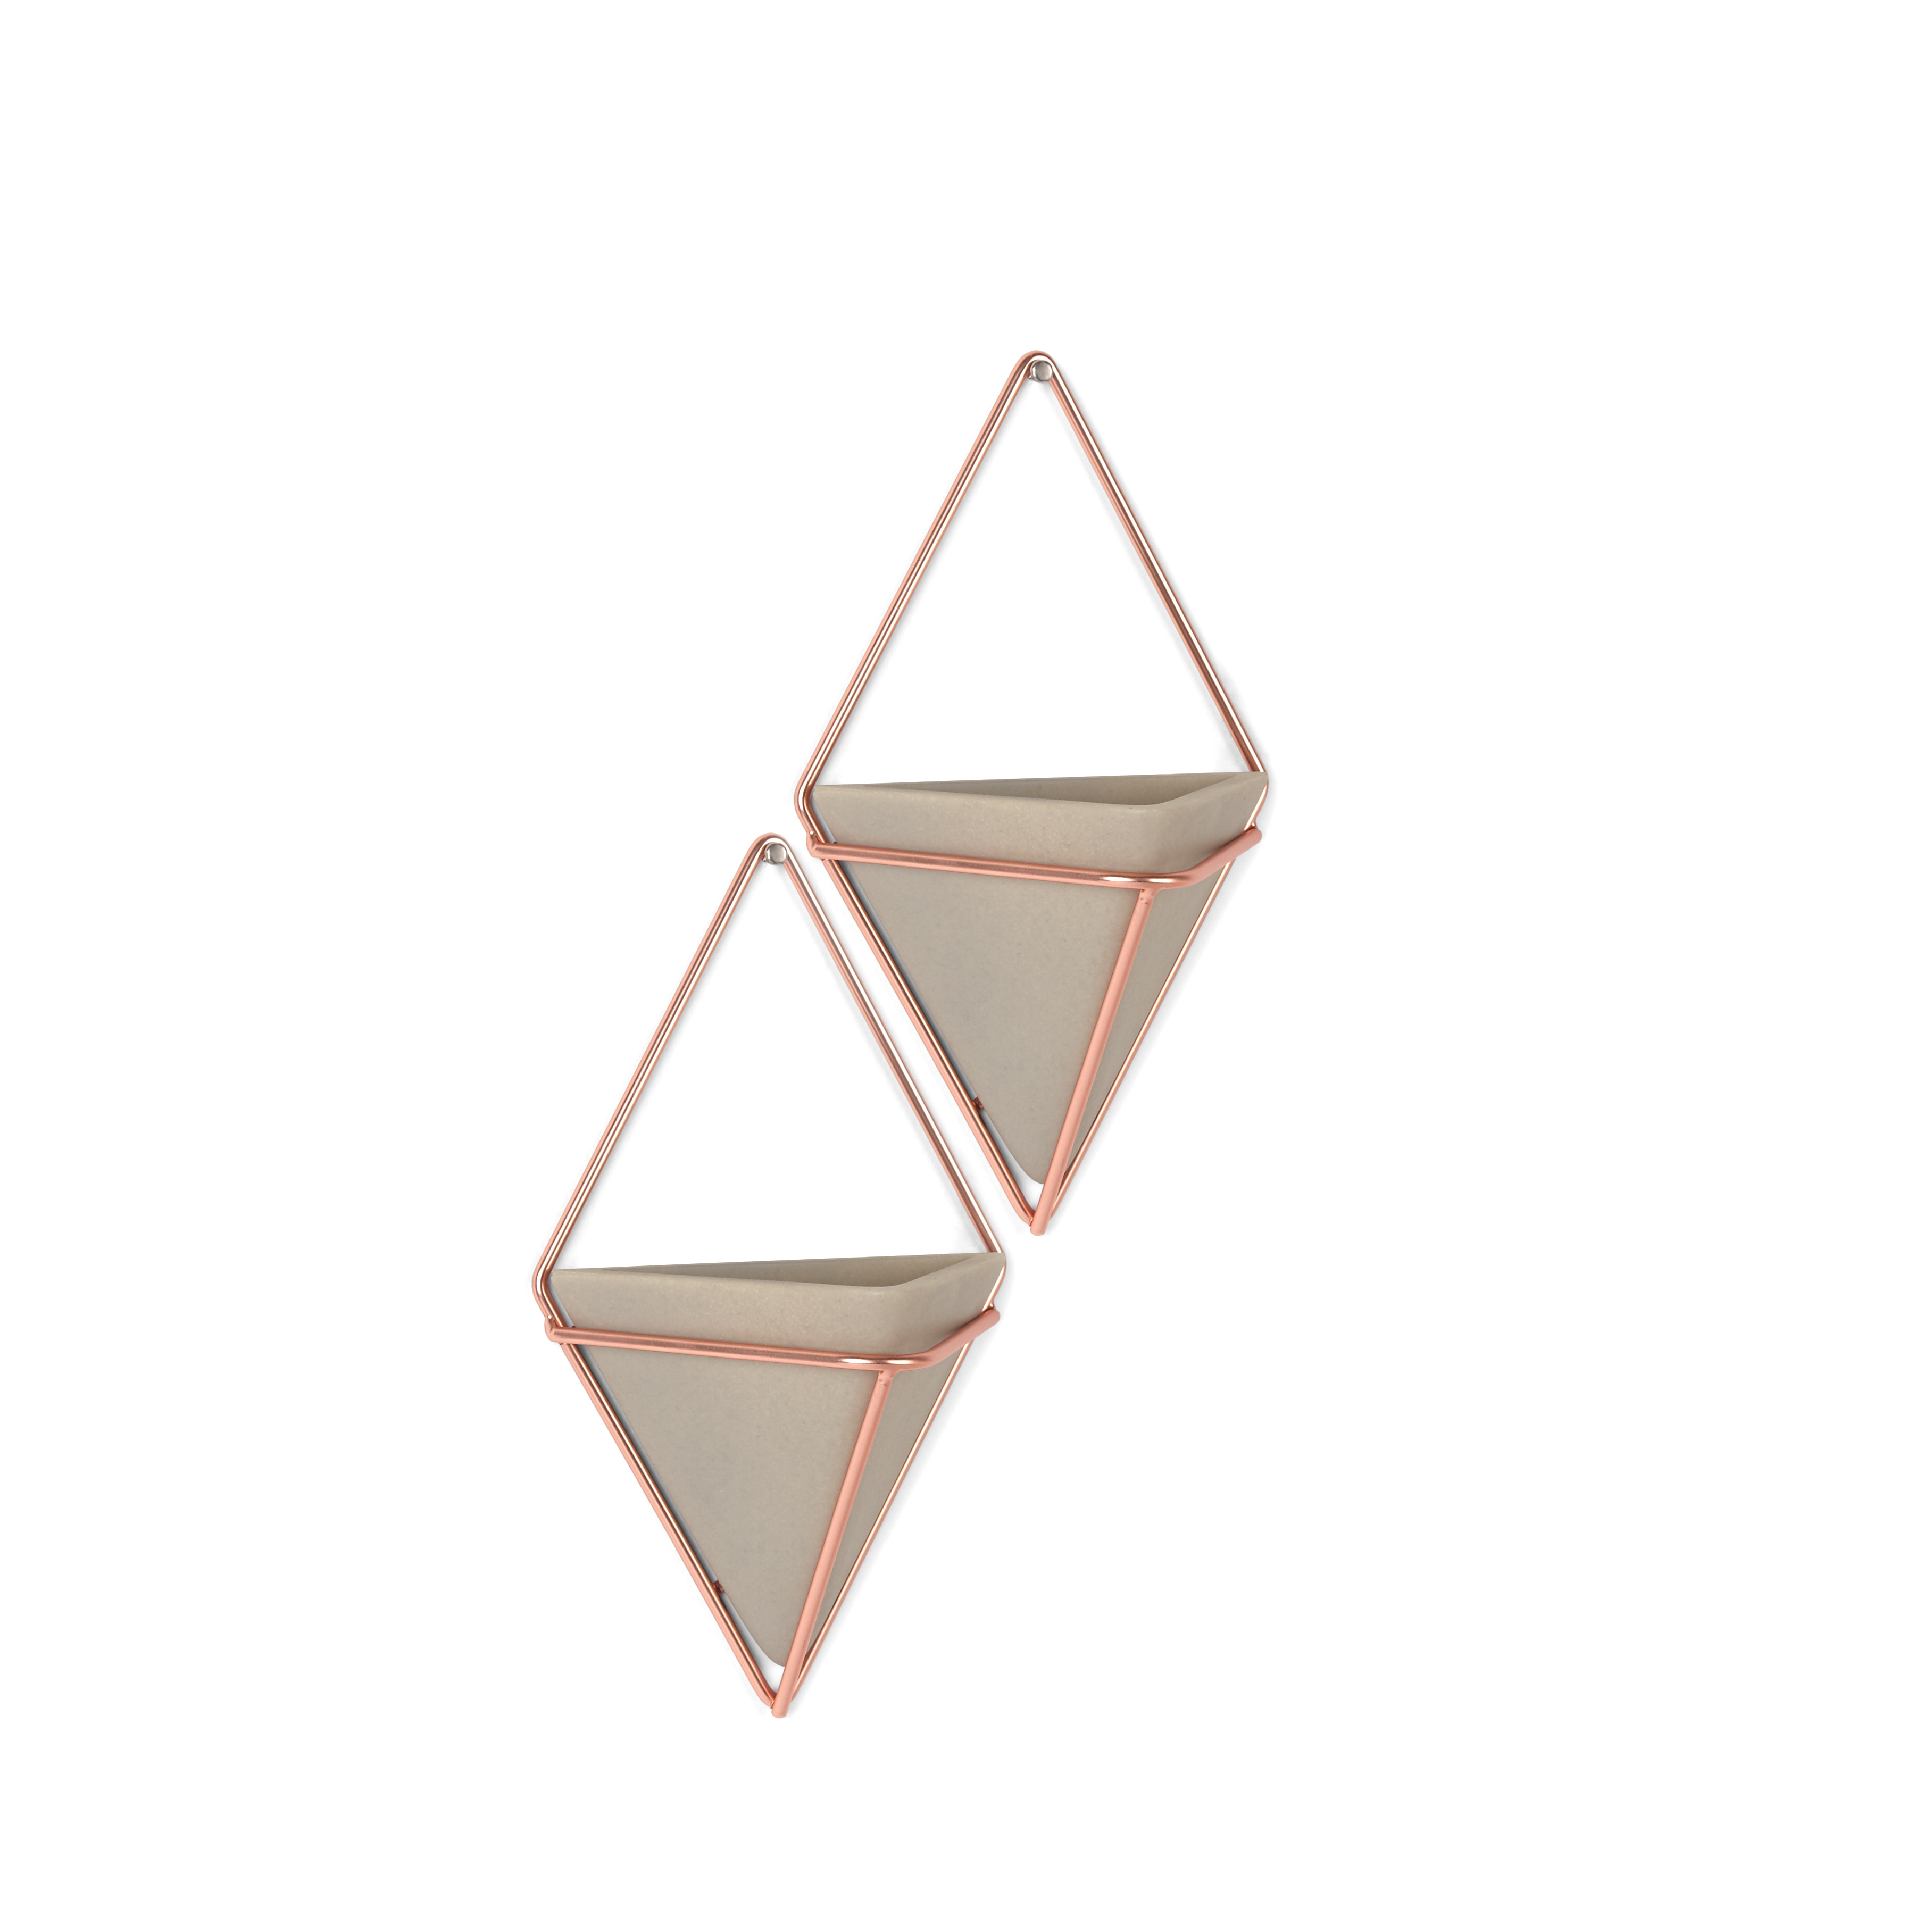 Newest 2 Piece Trigg Wall Decor Sets (Set Of 2) Pertaining To Umbra Trigg Hanging Planter Vase & Geometric Wall Decor Container (Gallery 4 of 20)